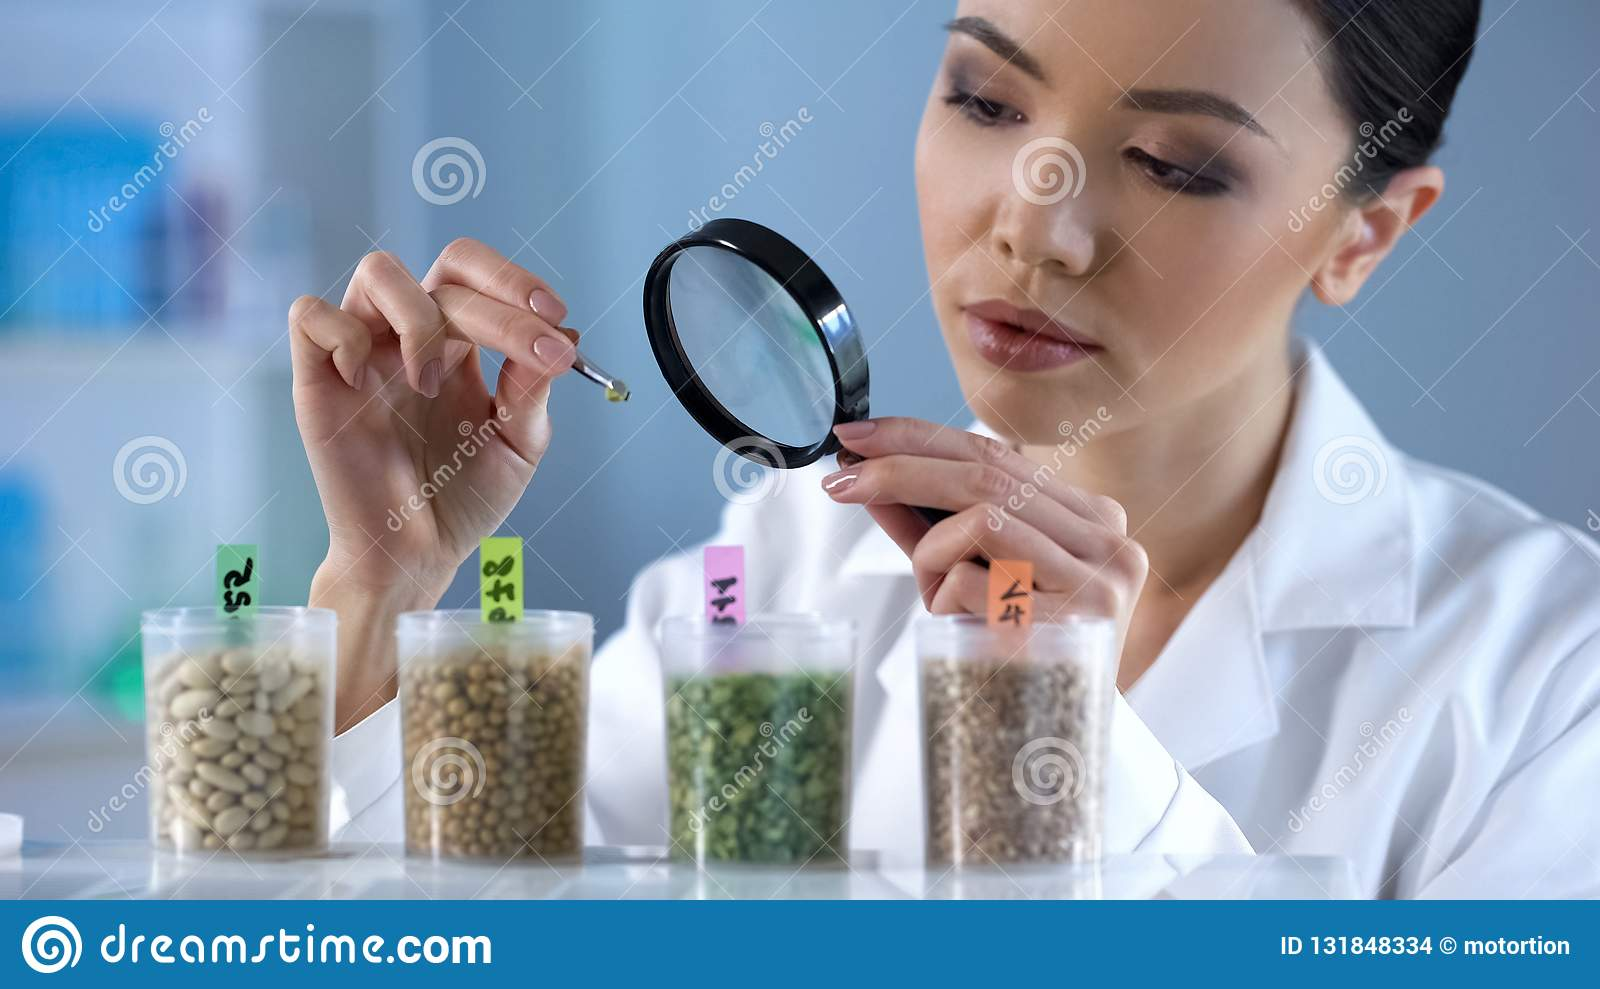 Female scientist looking at pea grain through magnifying glass, food inspection